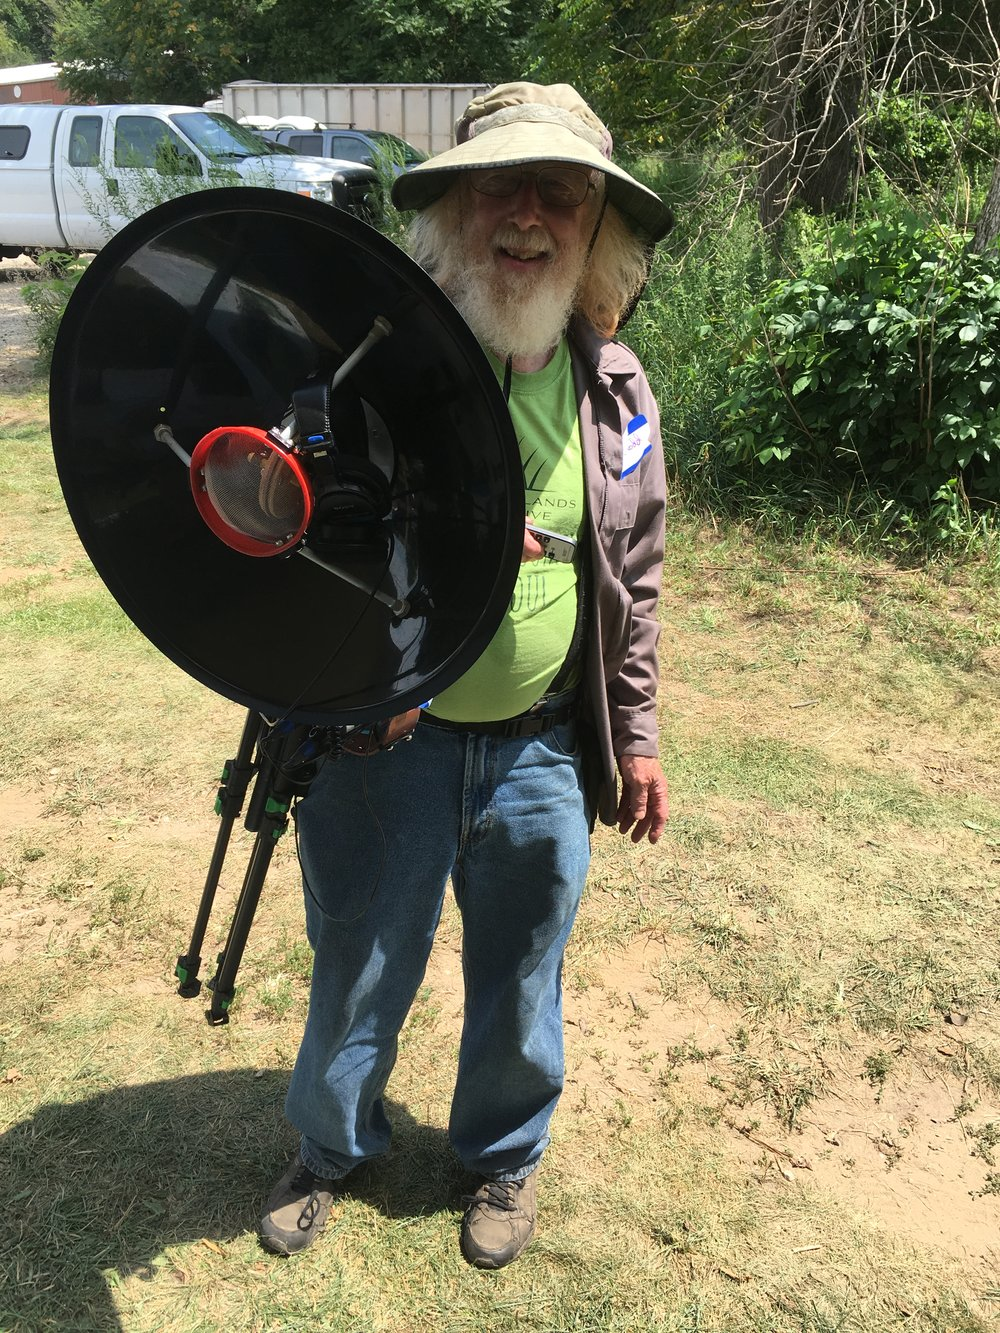 The BioBlitz was like a rock concert for nature enthusiasts! Regular Refuge visitor Dick Todd sported his equipment for recording insect calls and other nature sounds. Photo by Vera Leopold/TWI.